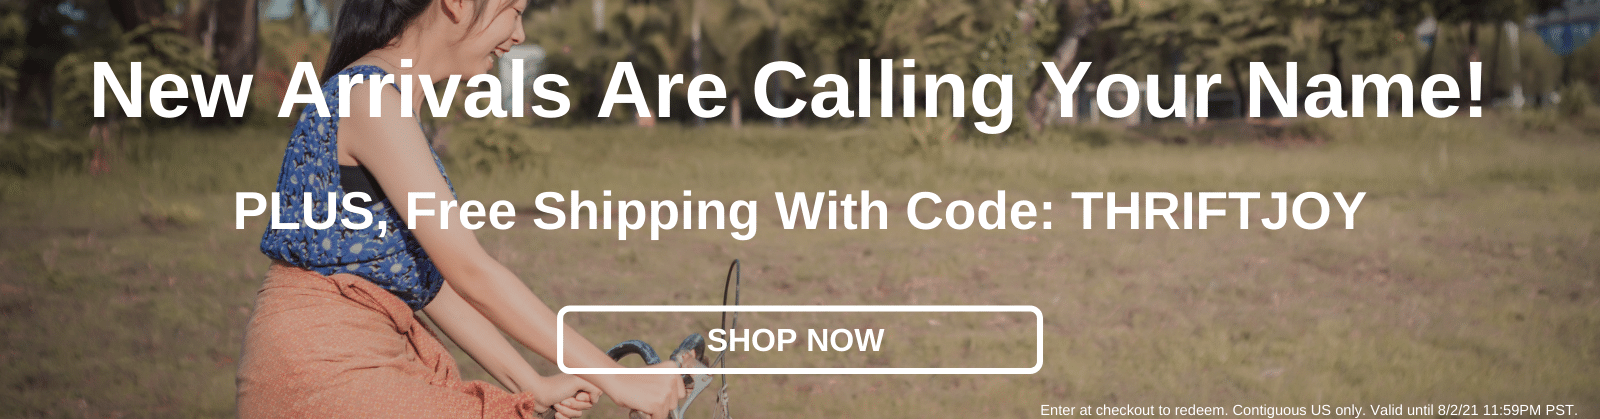 New Arrivals Are Calling Your Name! Plus, Free Shipping With Code: THRIFTJOY [Shop Now]